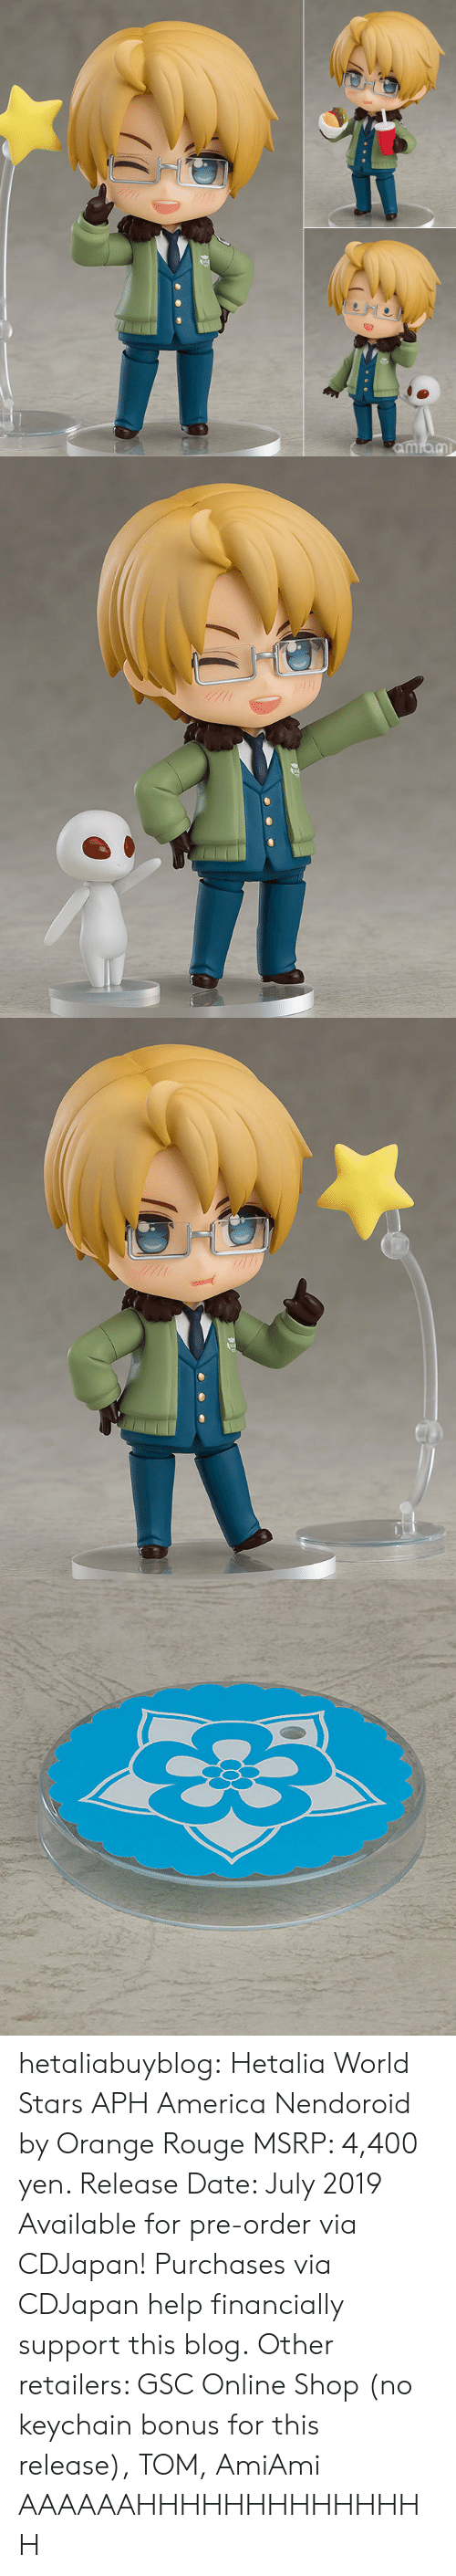 America, Click, and Target: 0  8 hetaliabuyblog: Hetalia World Stars APH America Nendoroid by Orange Rouge MSRP: 4,400 yen. Release Date: July 2019 Available for pre-order via CDJapan! Purchases via CDJapan help financially support this blog. Other retailers: GSC Online Shop (no keychain bonus for this release), TOM, AmiAmi   AAAAAAHHHHHHHHHHHHHH